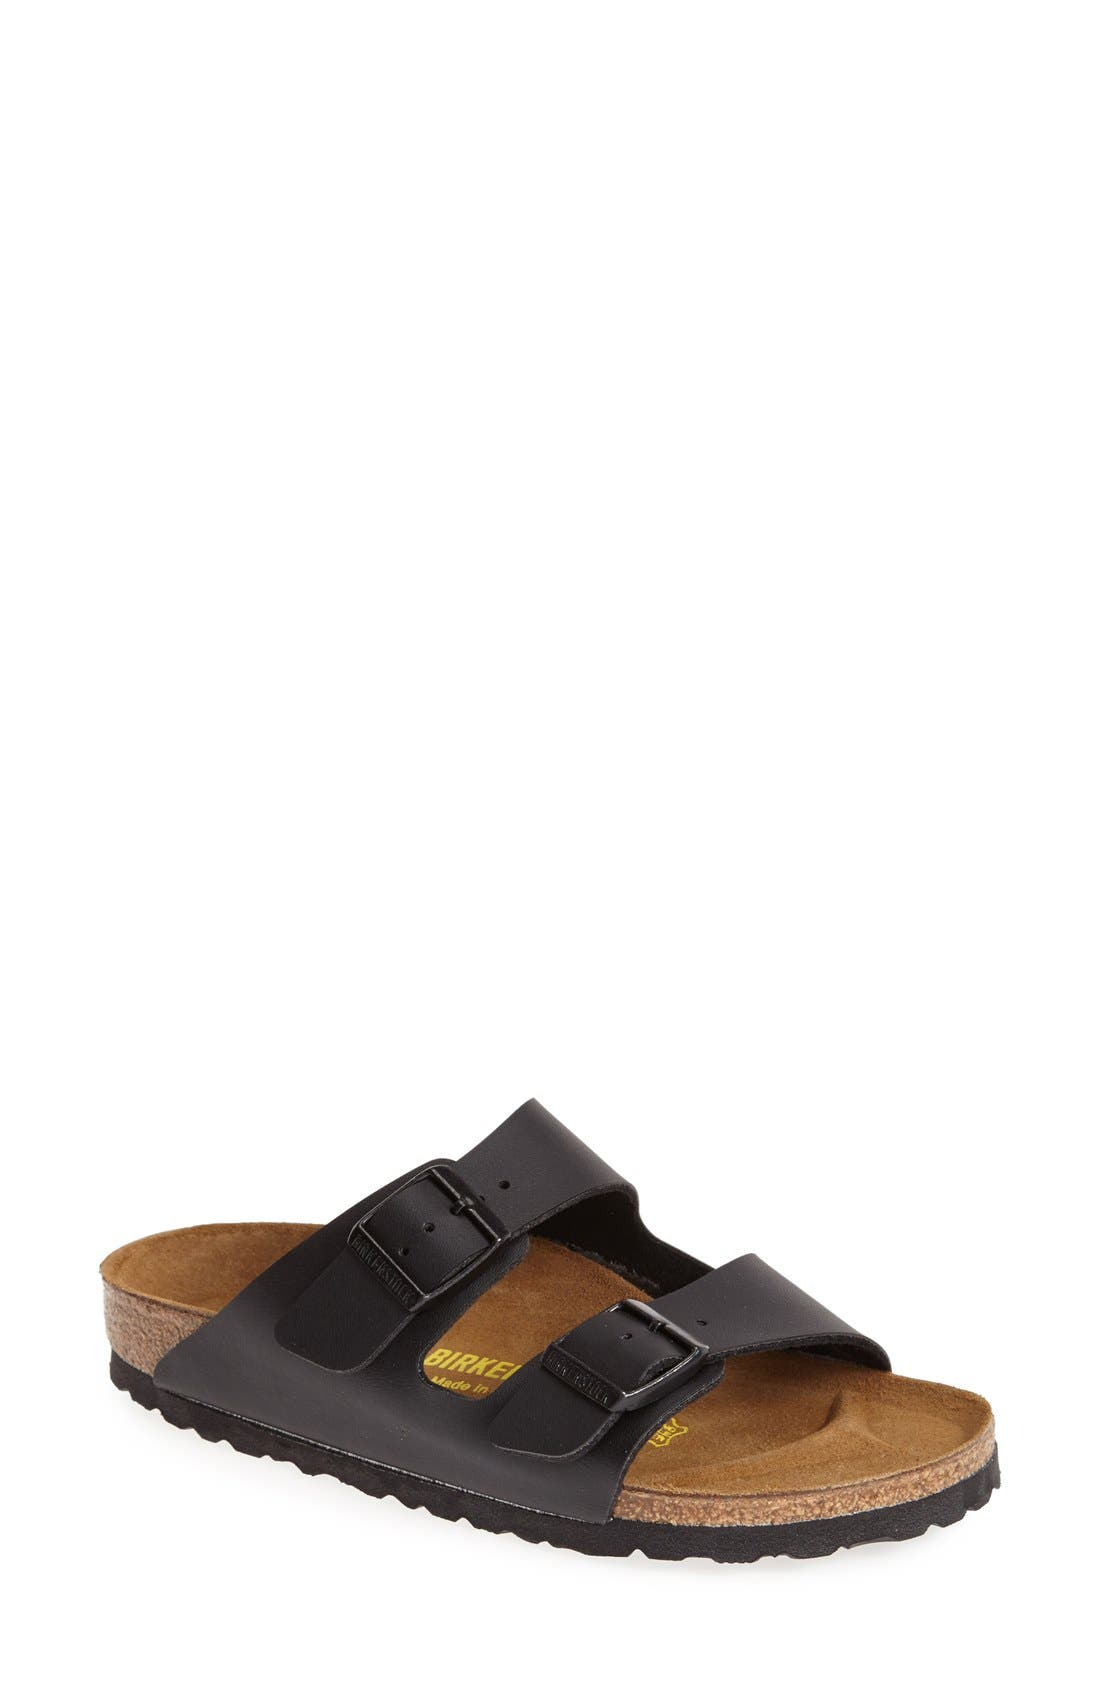 Arizona Birko-Flor Sandal,                         Main,                         color, BLACK LEATHER